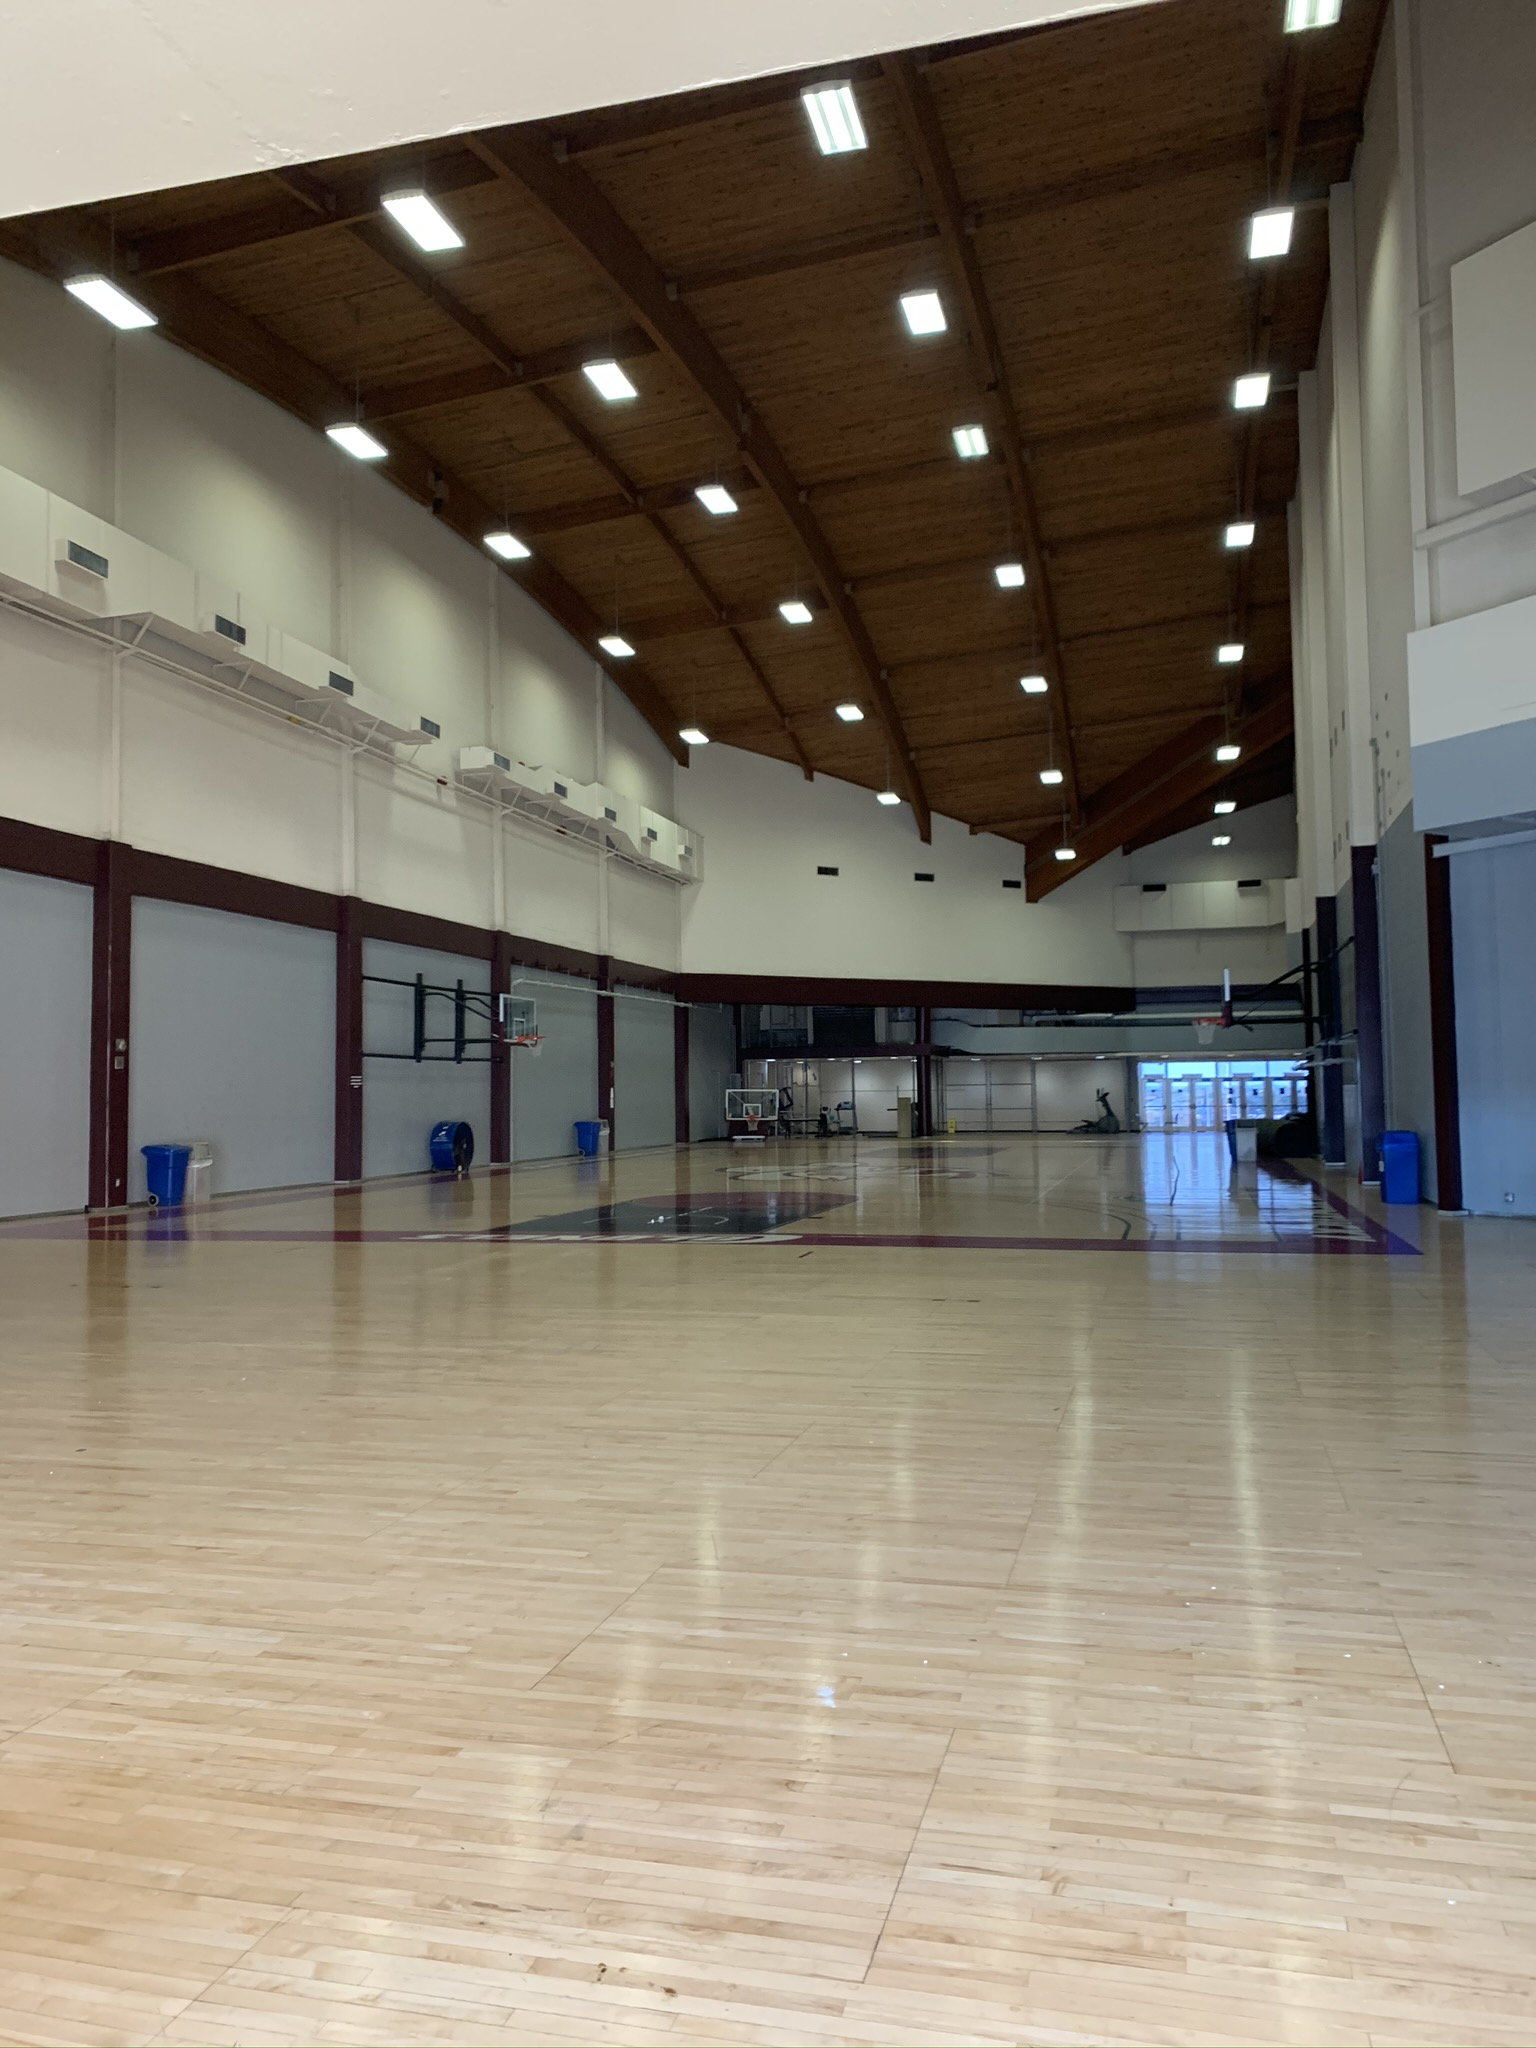 Alumni Aux Gym View looking southward